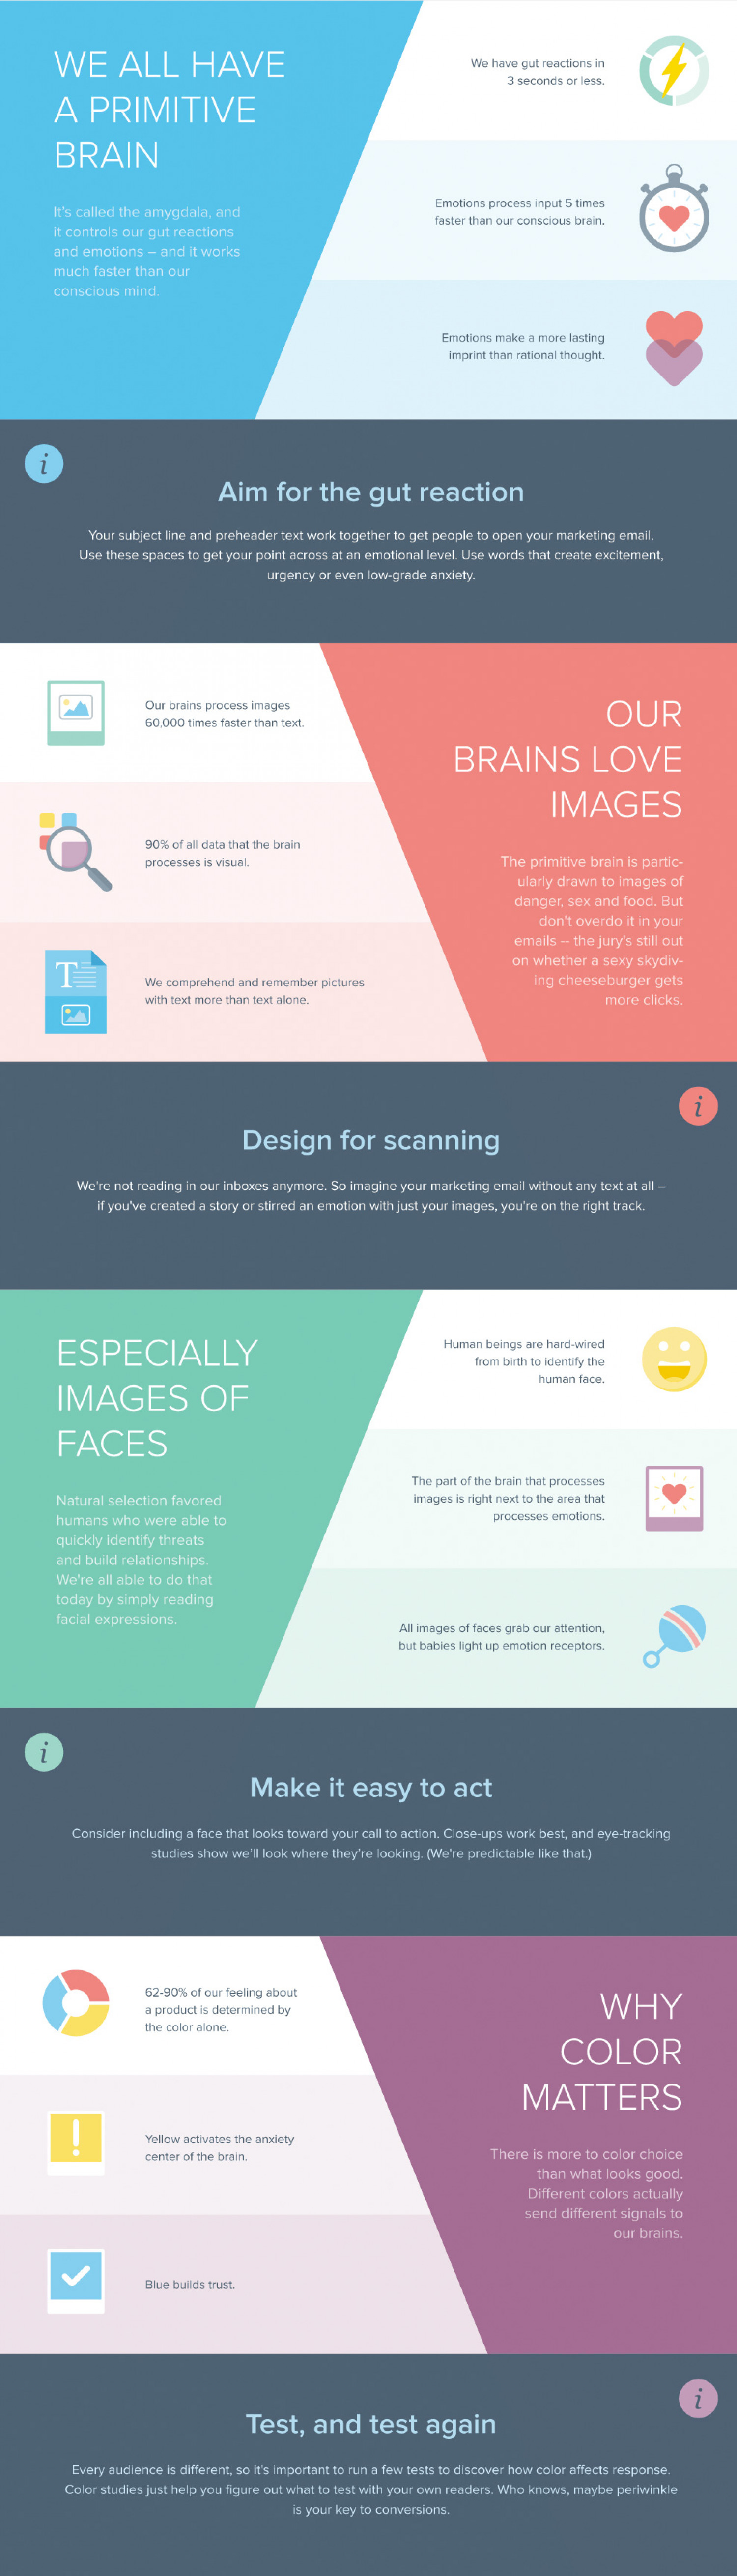 12 Facts About the Human Brain Infographic